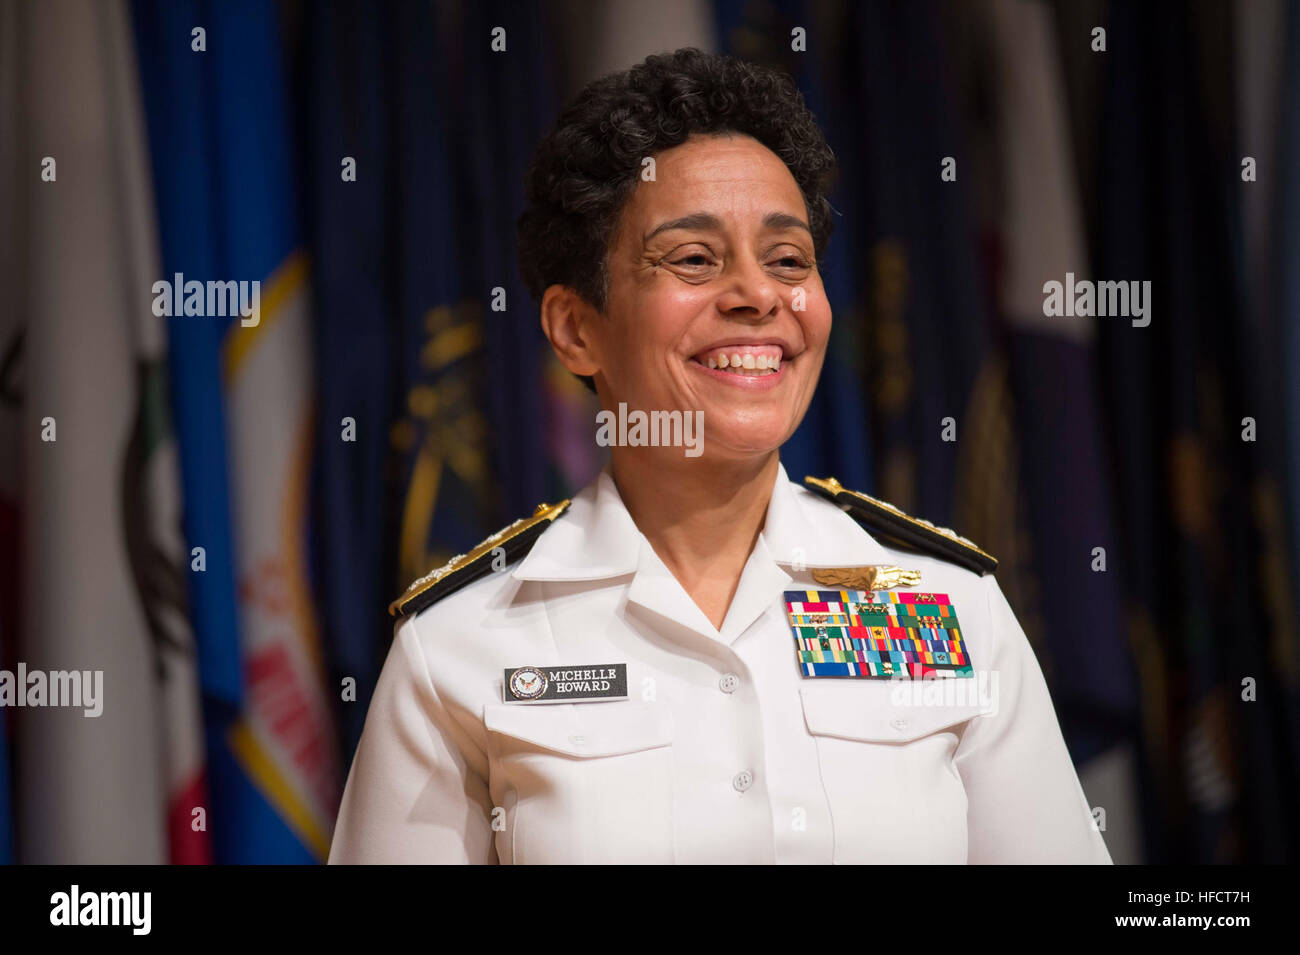 Adm. Michelle Howard smiles following her historic promotion to the rank of admiral at the Women in Military Service Stock Photo